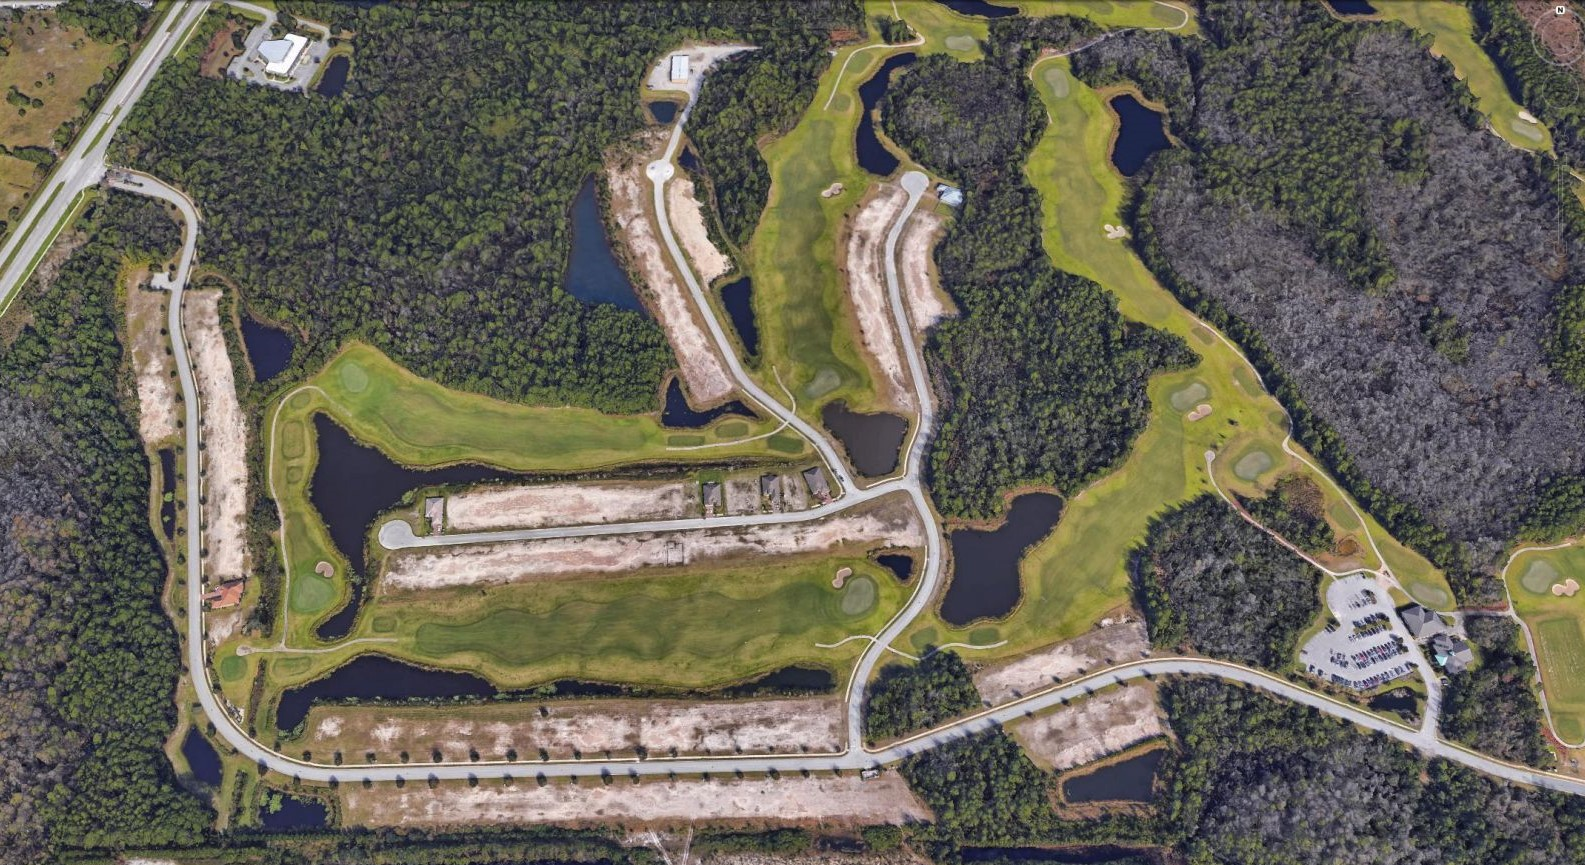 Aerial photo of Grand Reserve showing the roadway design and golf courses